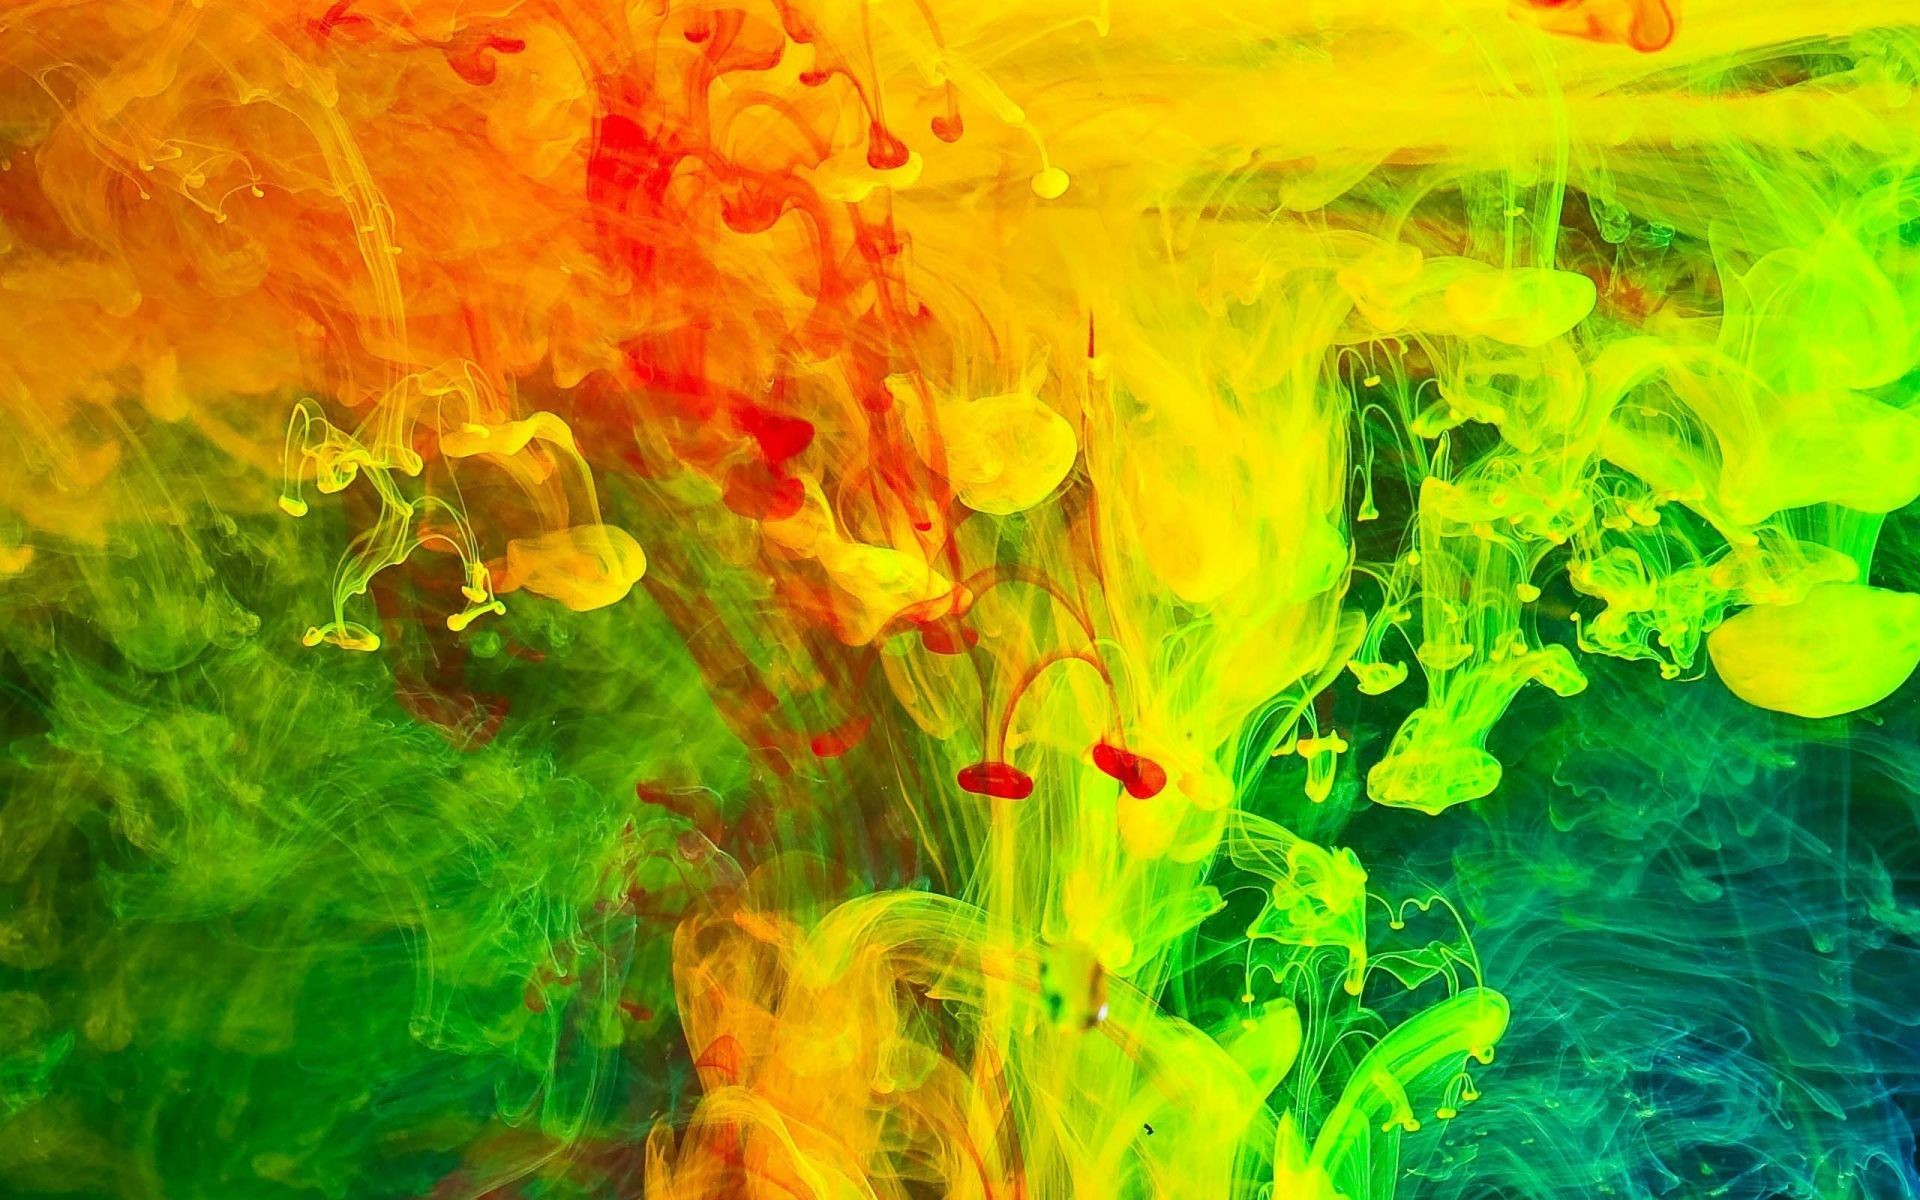 Paint – Abstract Color Splash | HD 3D and Abstract Wallpaper Free Download  …